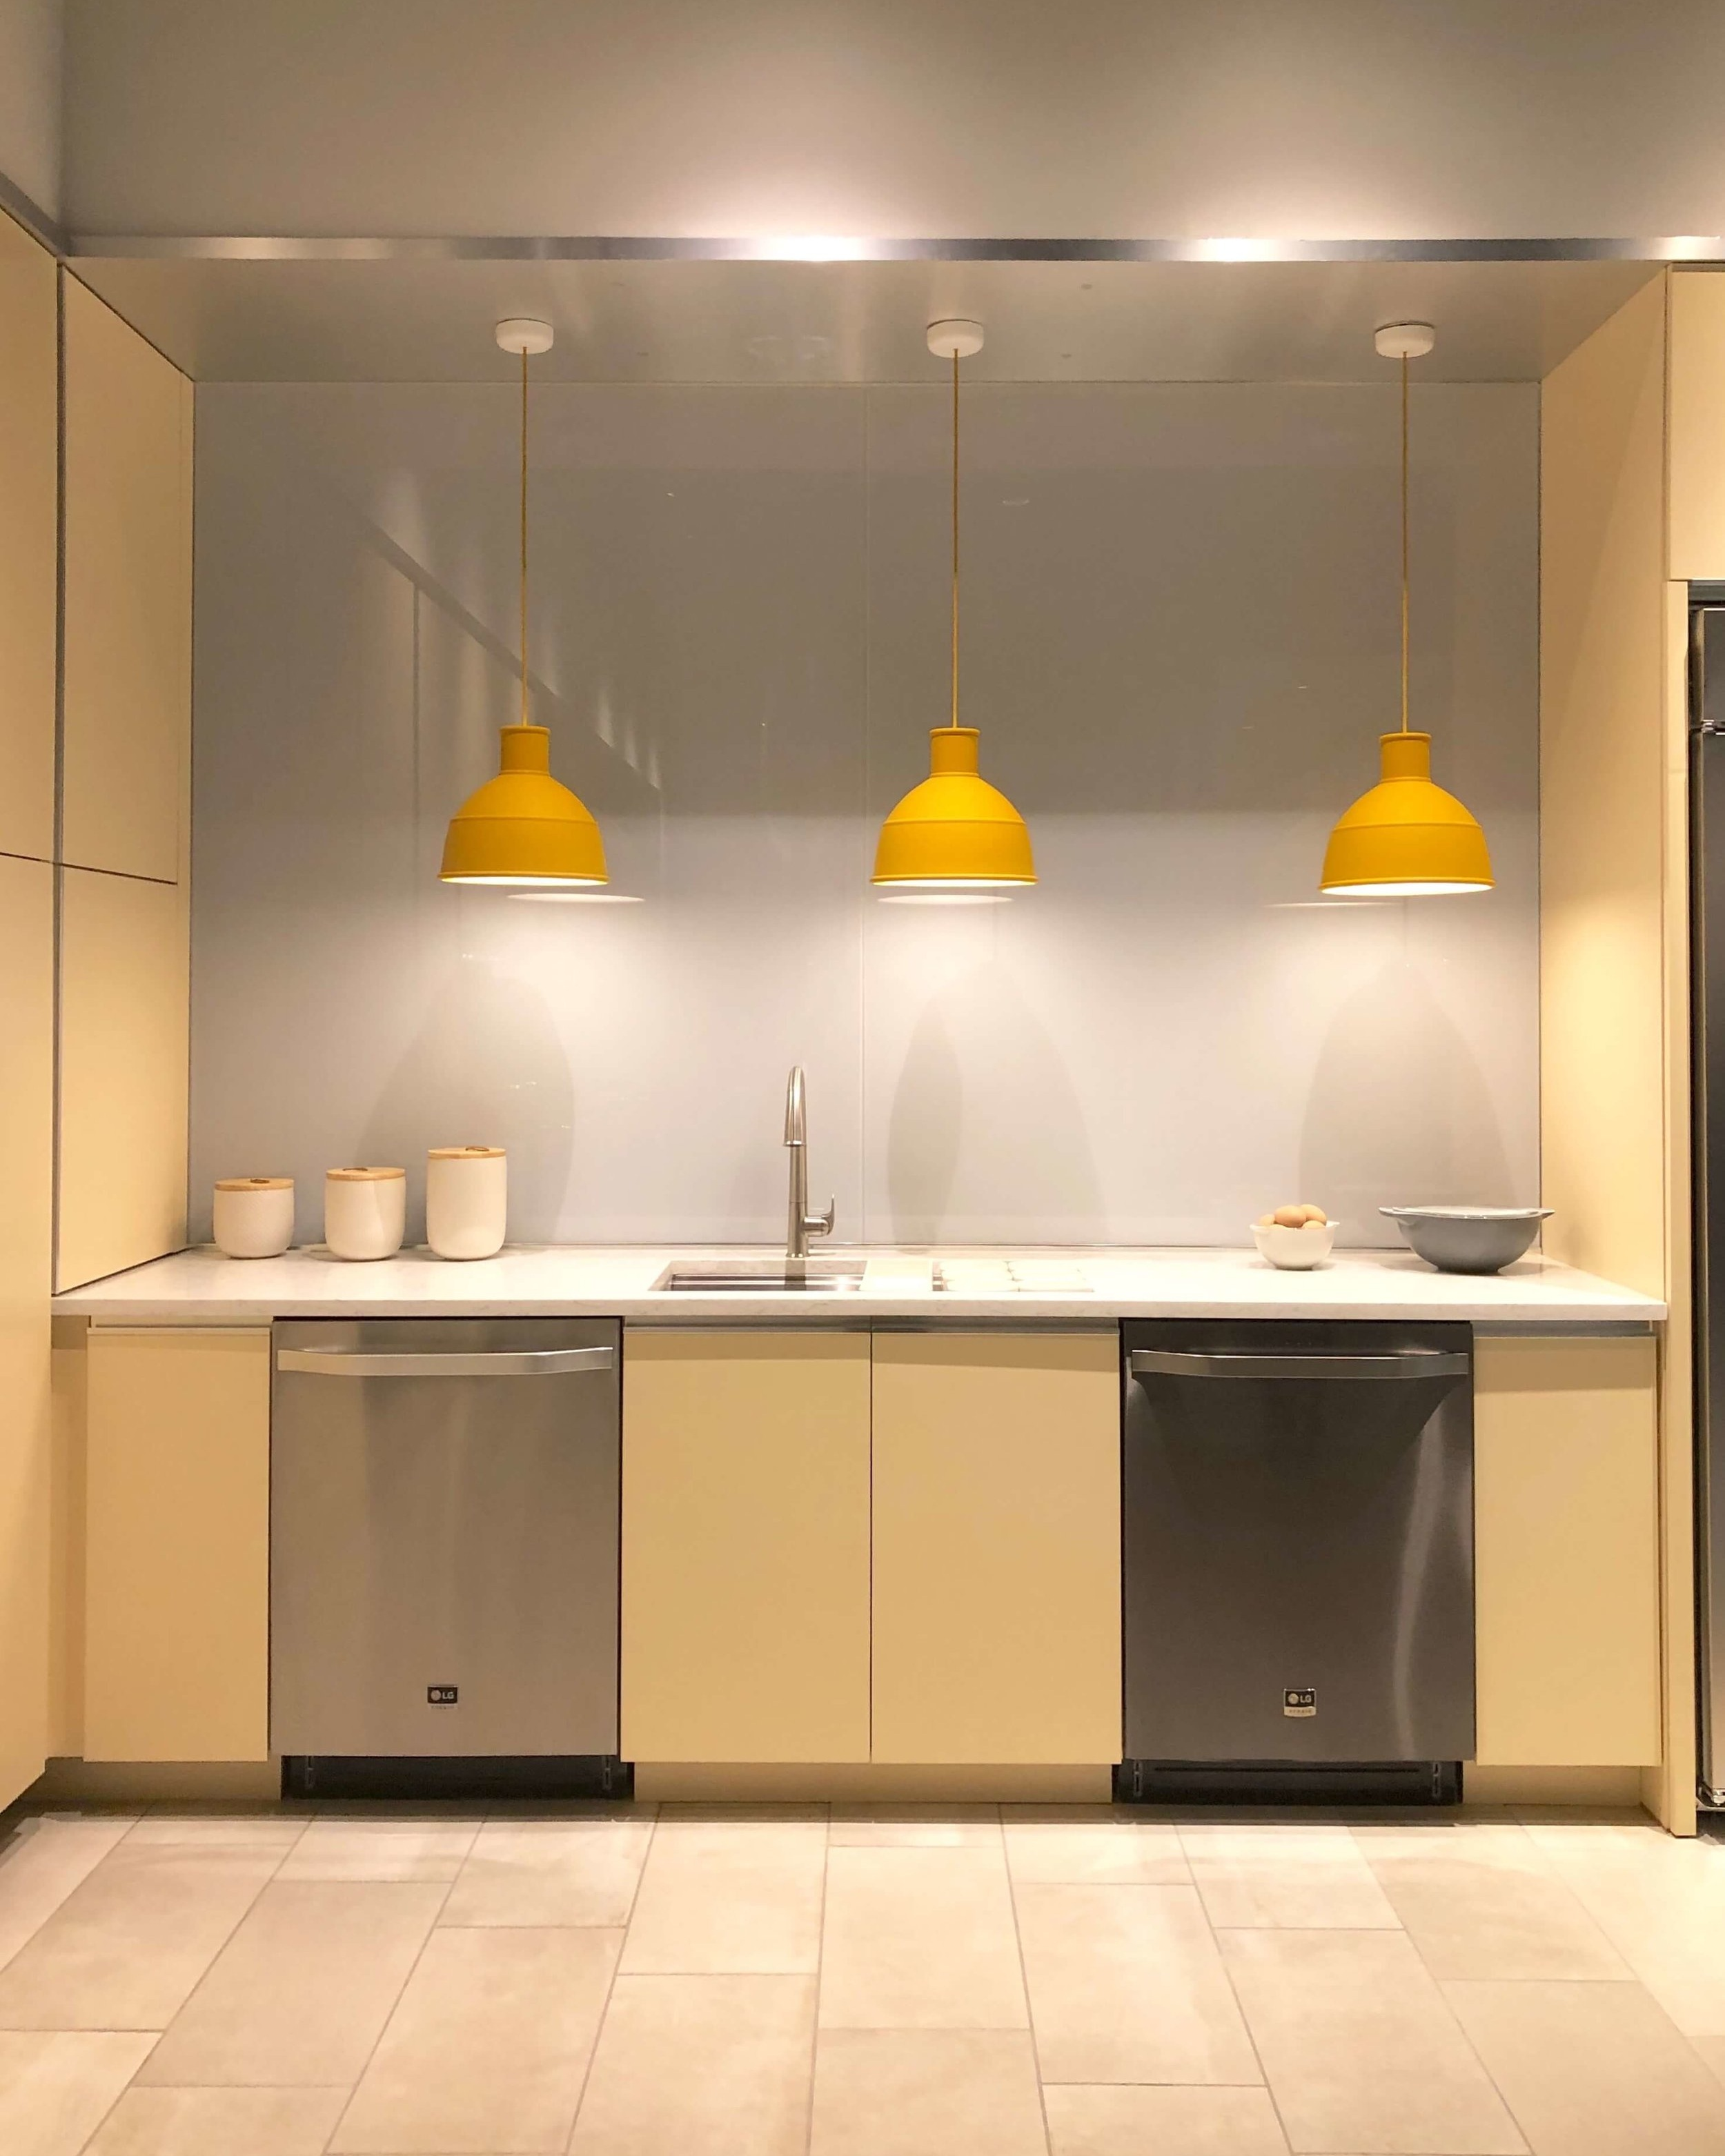 Butter yellow cabinetry and yellow pendants in kitchen w/ LG Appliances | SKS Appliances Experience and Design Center, Napa